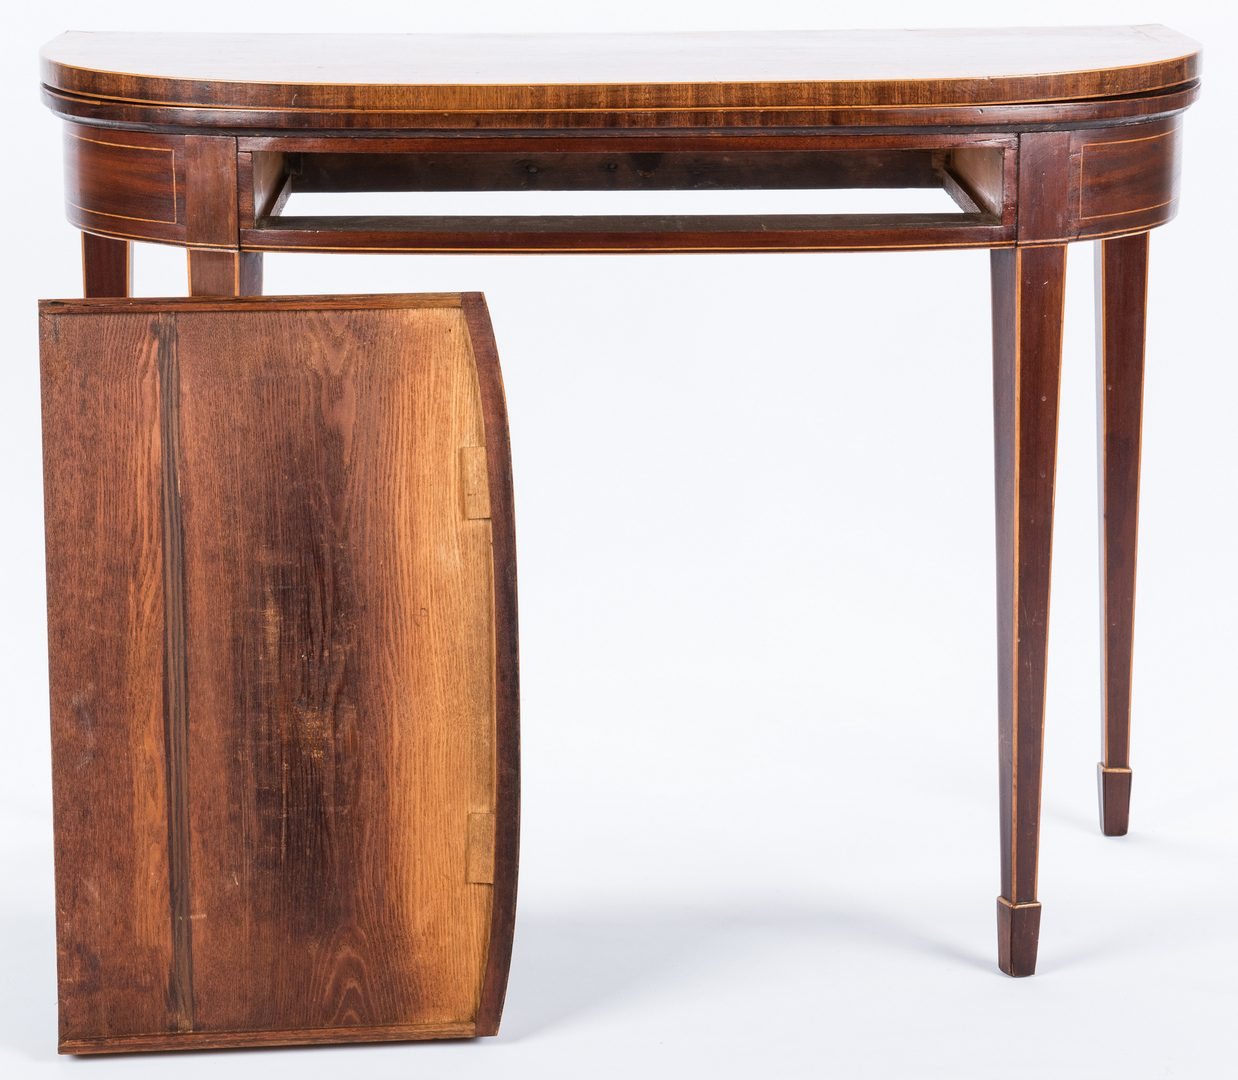 Lot 280: George III Inlaid Demilune Games Table